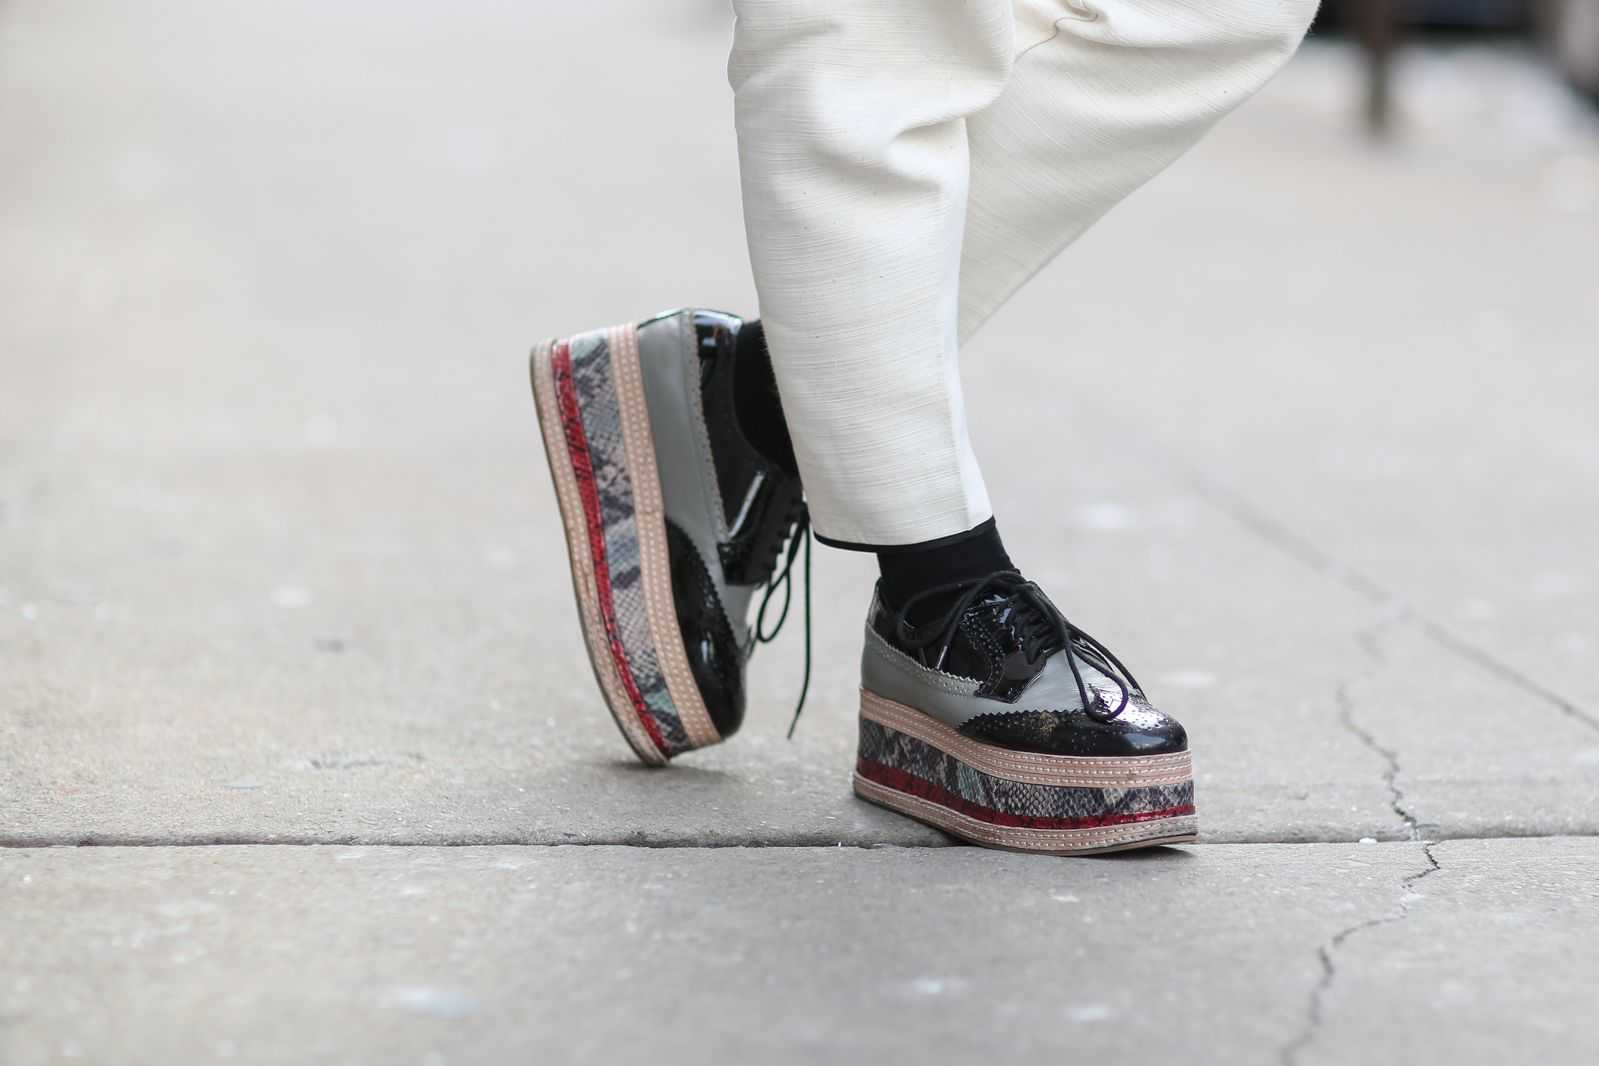 30+ Drop-Dead-Gorgeous Shoes Spotted In New York City #refinery29  http://www.refinery29.com/2015/02/82248/best-fashion-week-2015-shoes#slide-24  Stack 'em up!